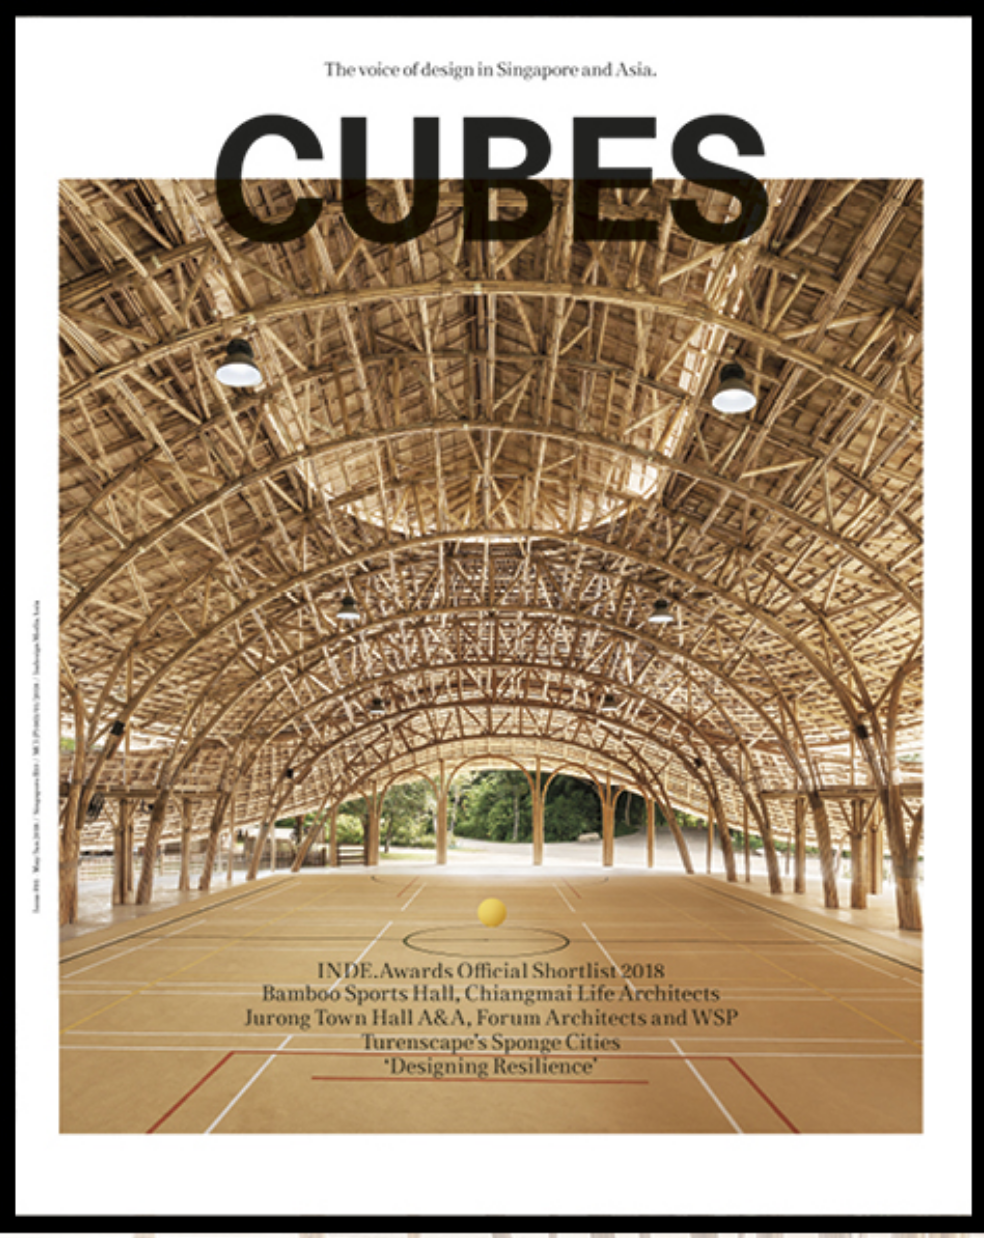 Panyaden bamboo Sports Hall on the cover of CUBES magzine issue 91